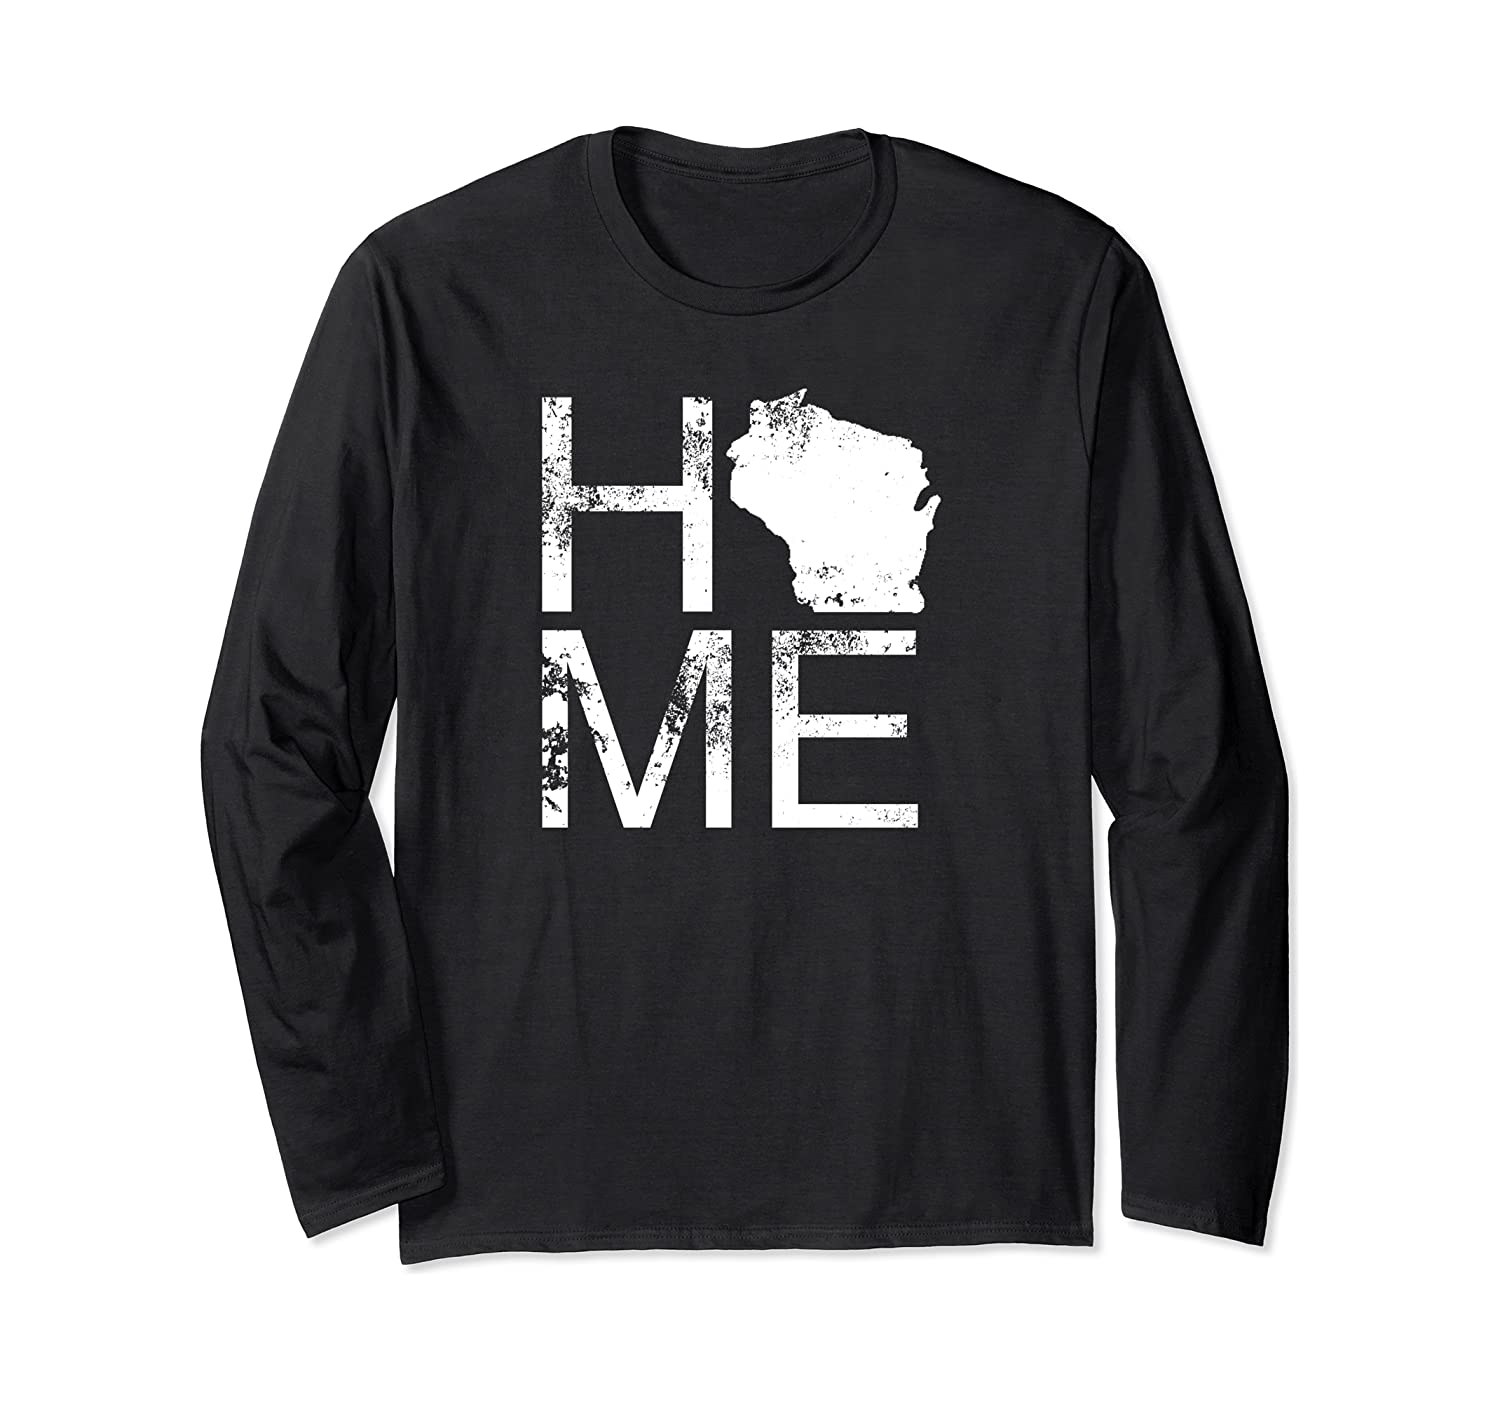 Vintage Wisconsin Home Map In Place Of O WI State Wisconsin Long Sleeve T-Shirt